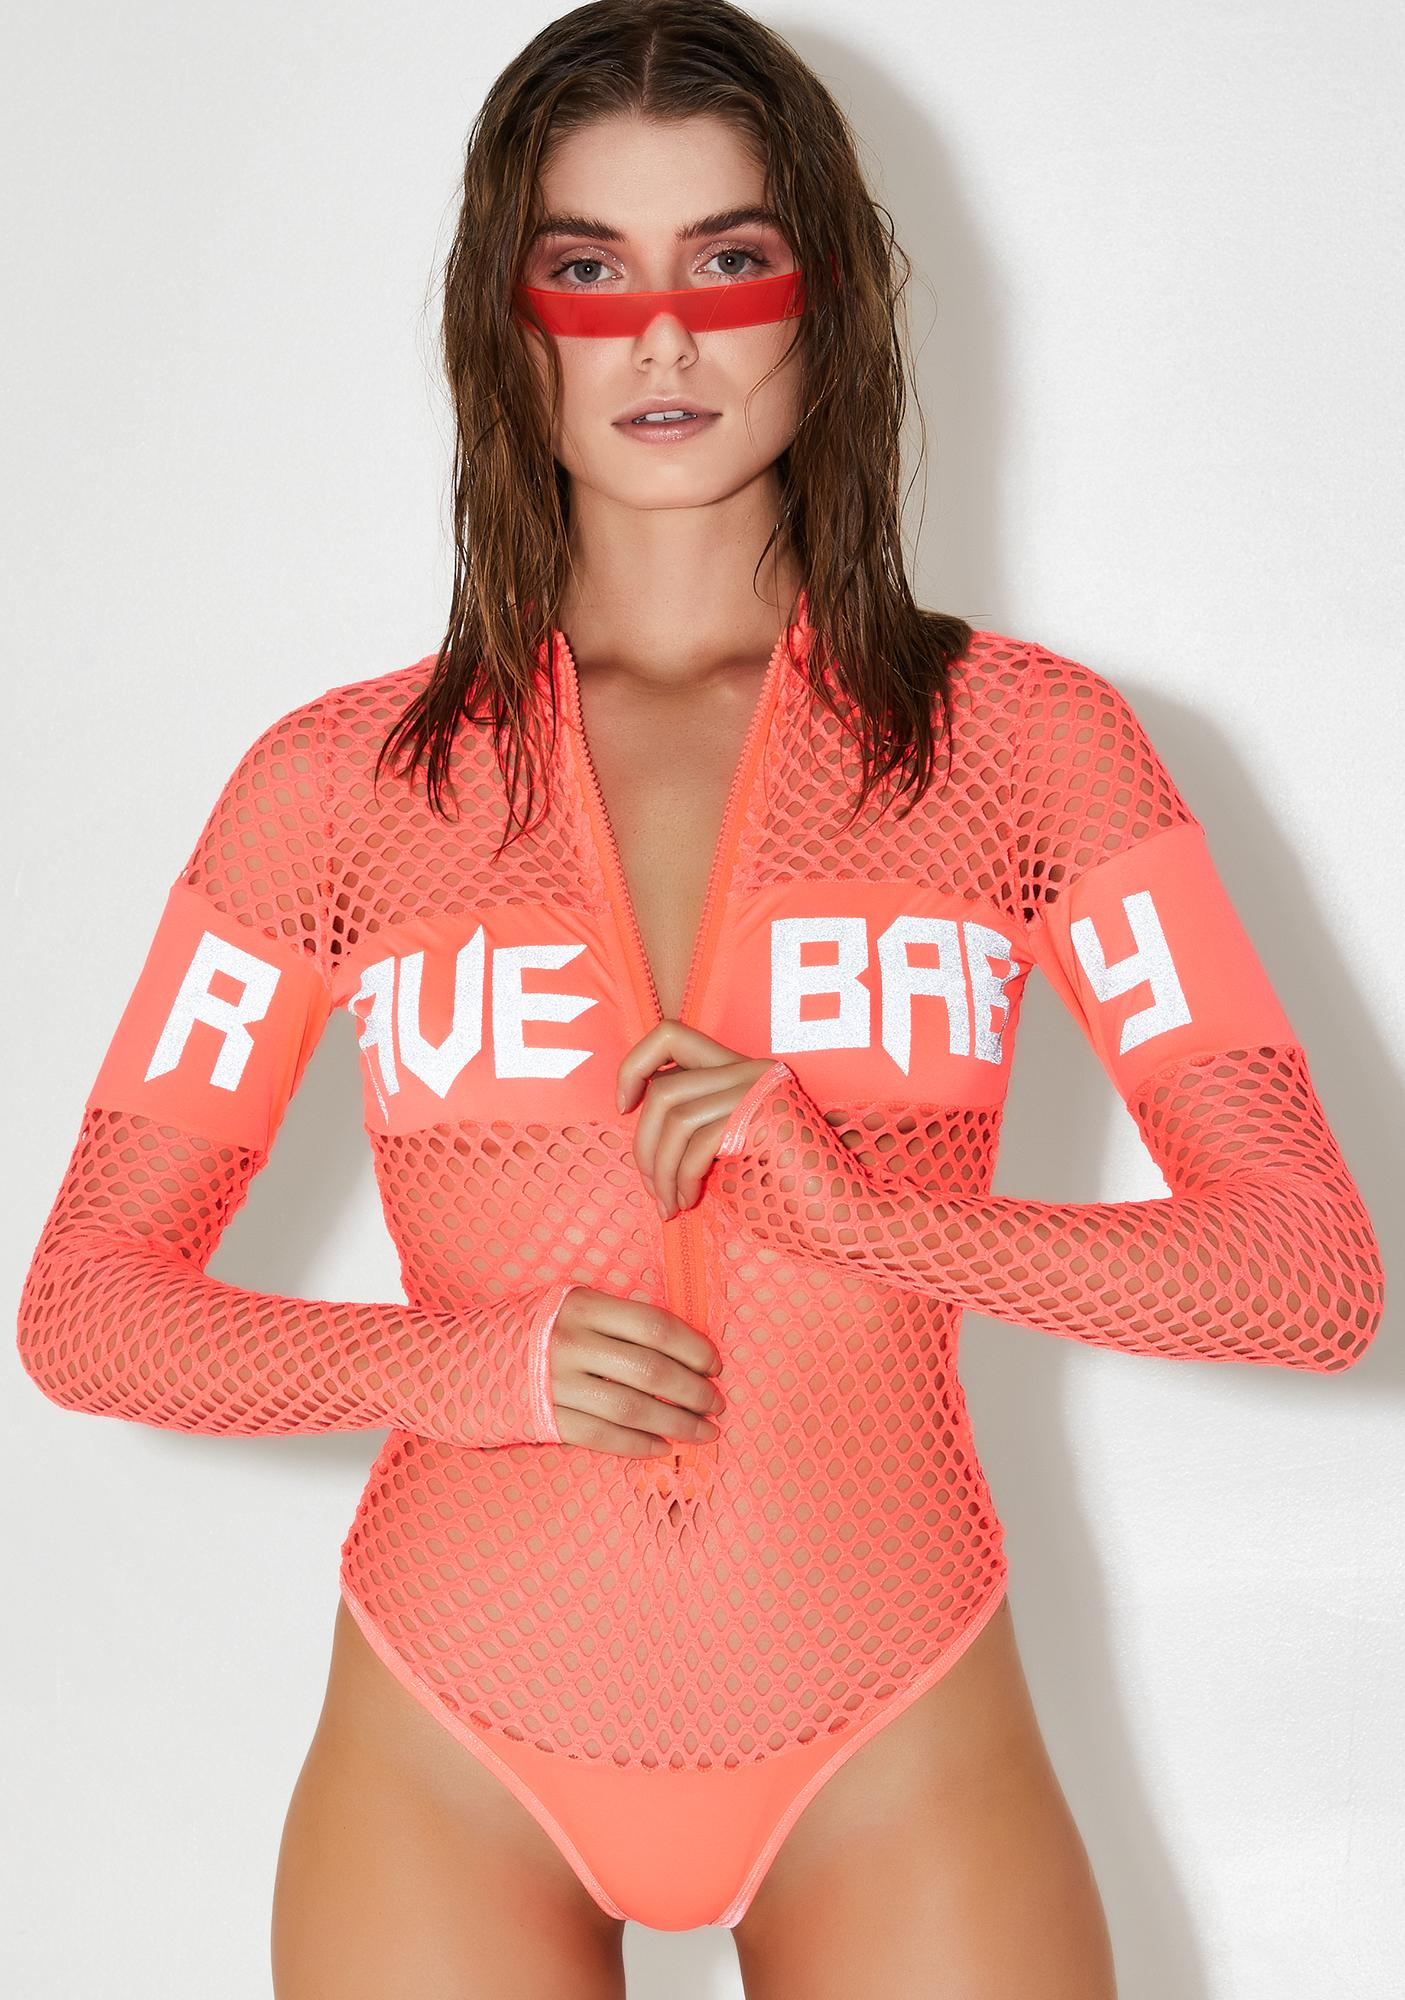 Club Exx Rave Baby Fishnet Bodysuit